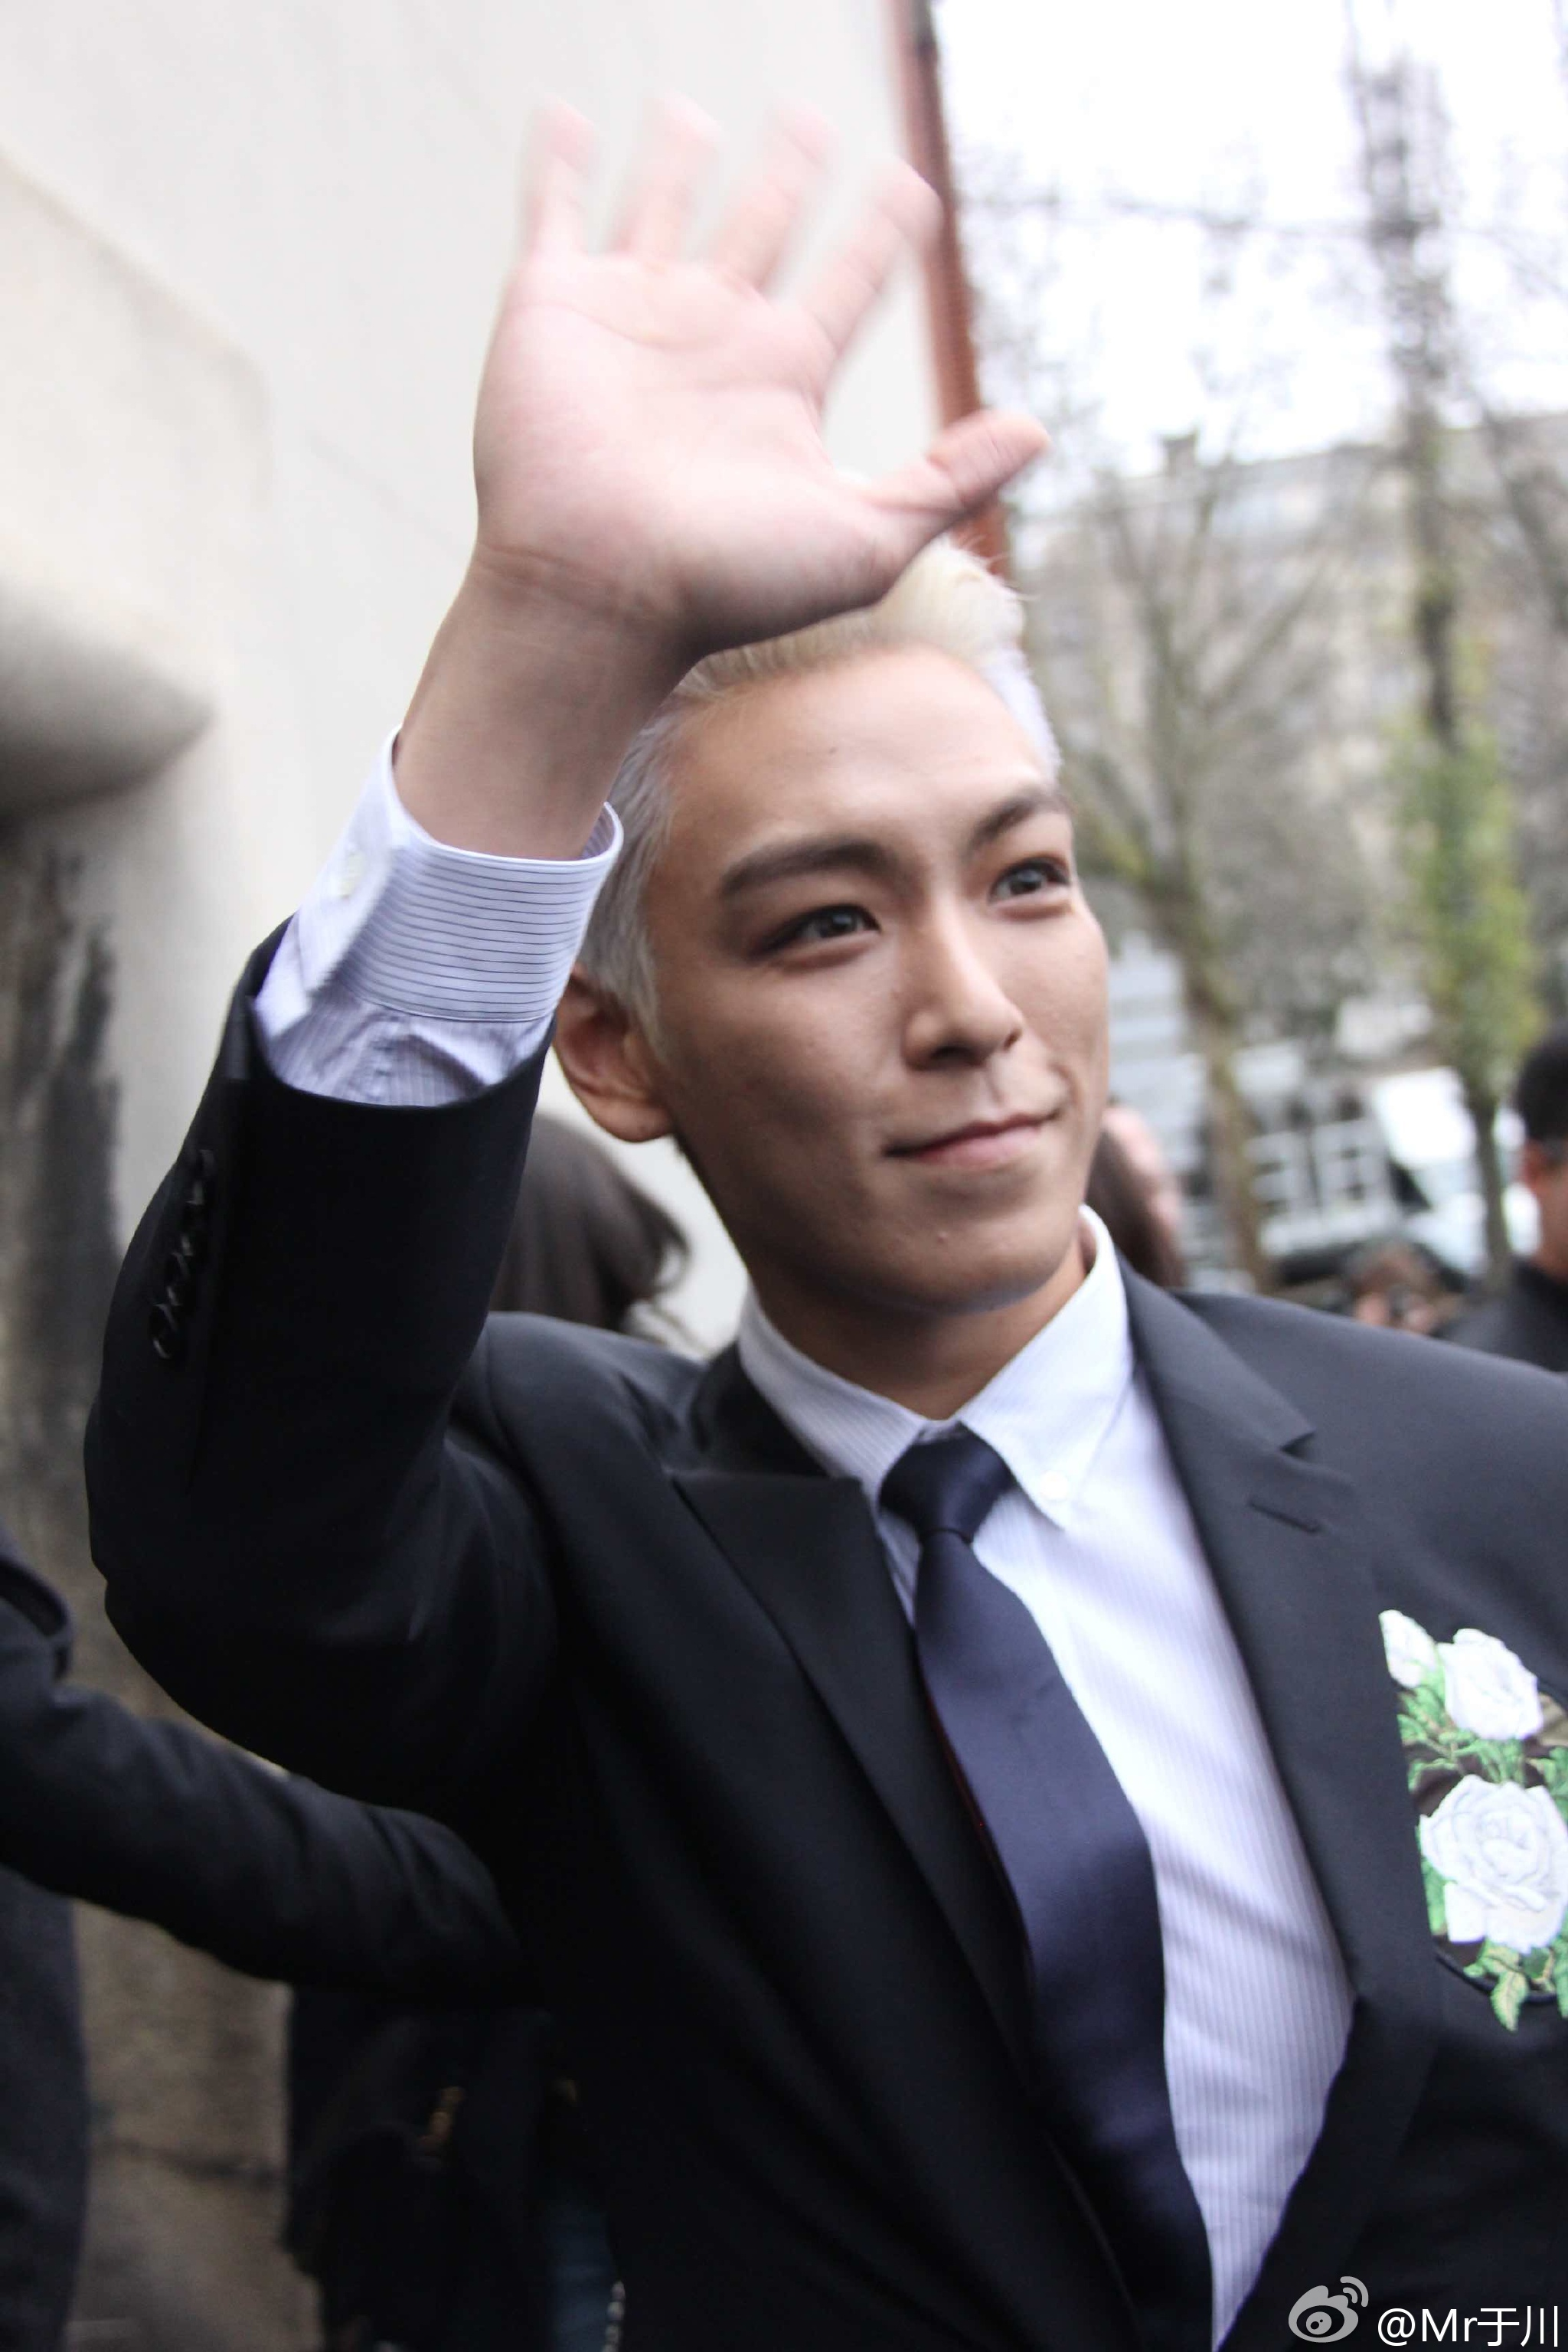 TOP - Dior Homme Fashion Show - 23jan2016 - Mr于川 - 02